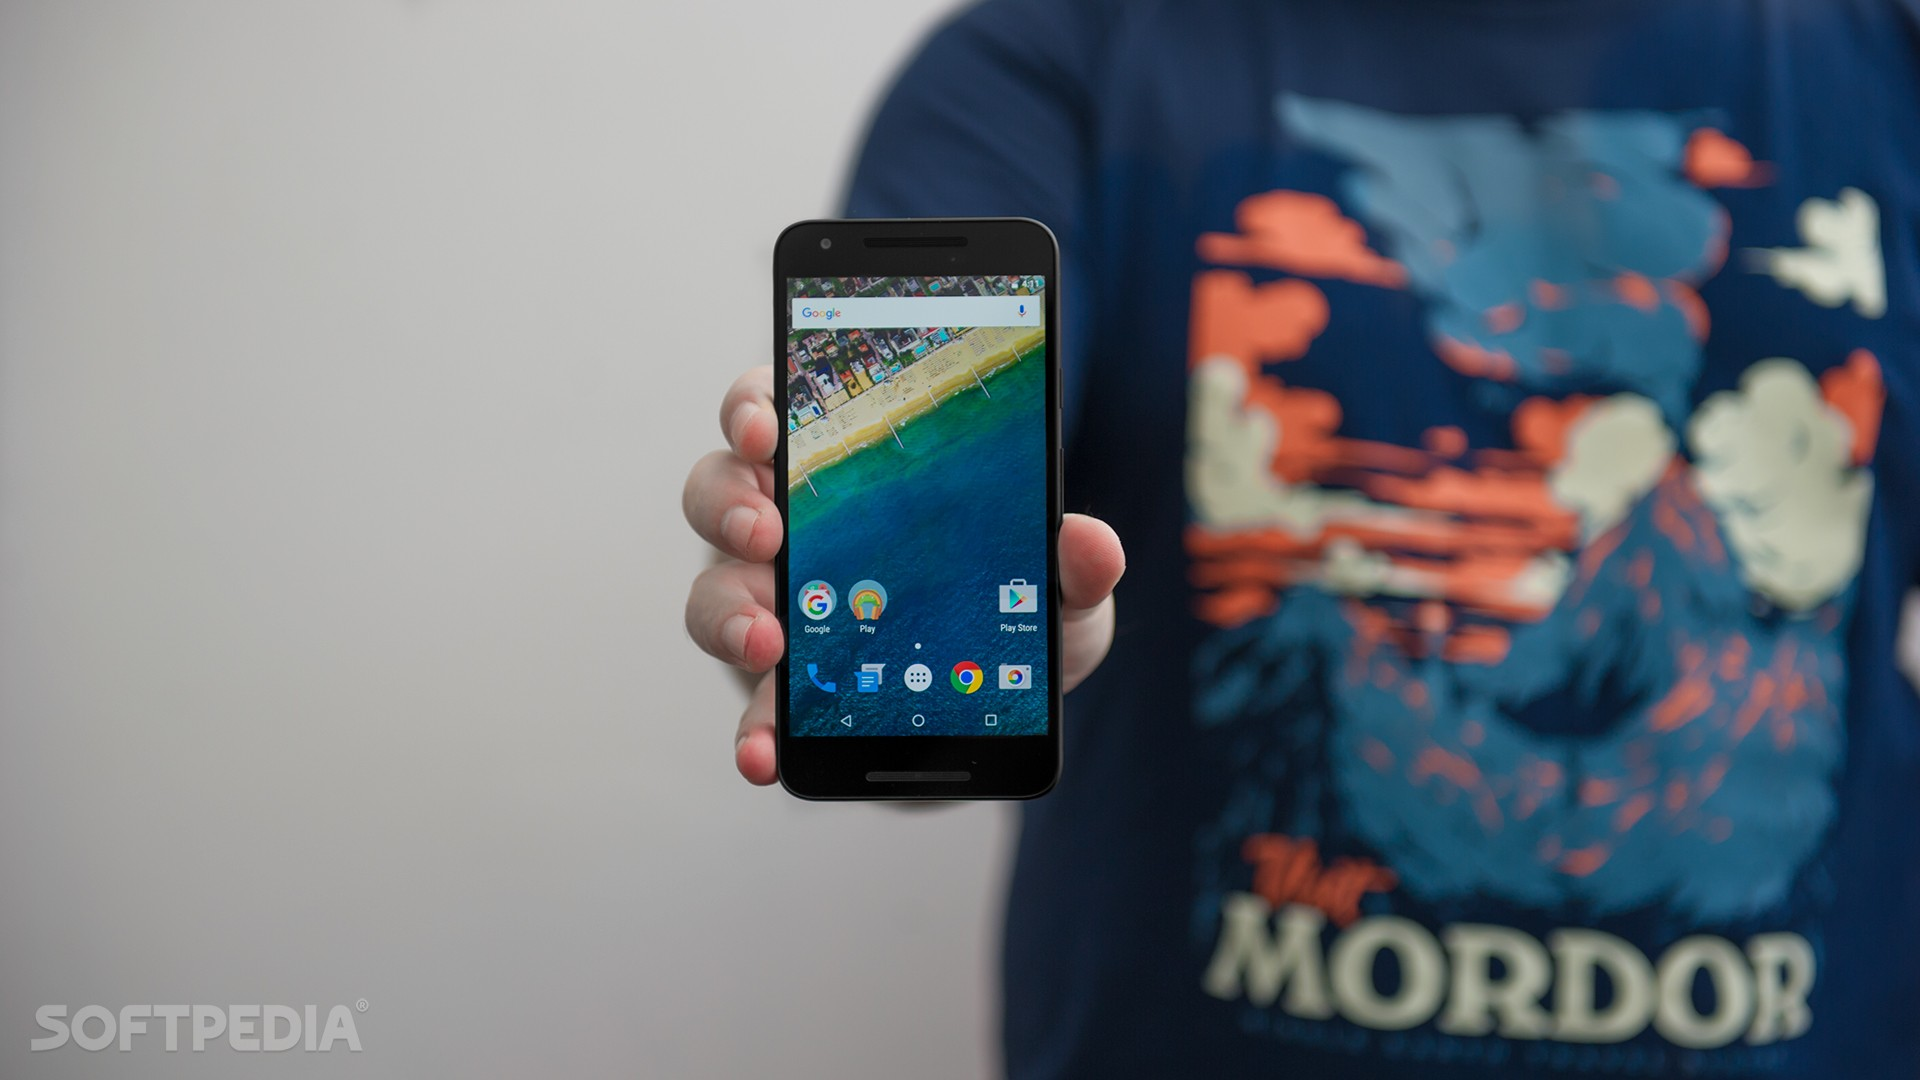 LG Nexus 5X Review - Raw Android Experience for the Masses